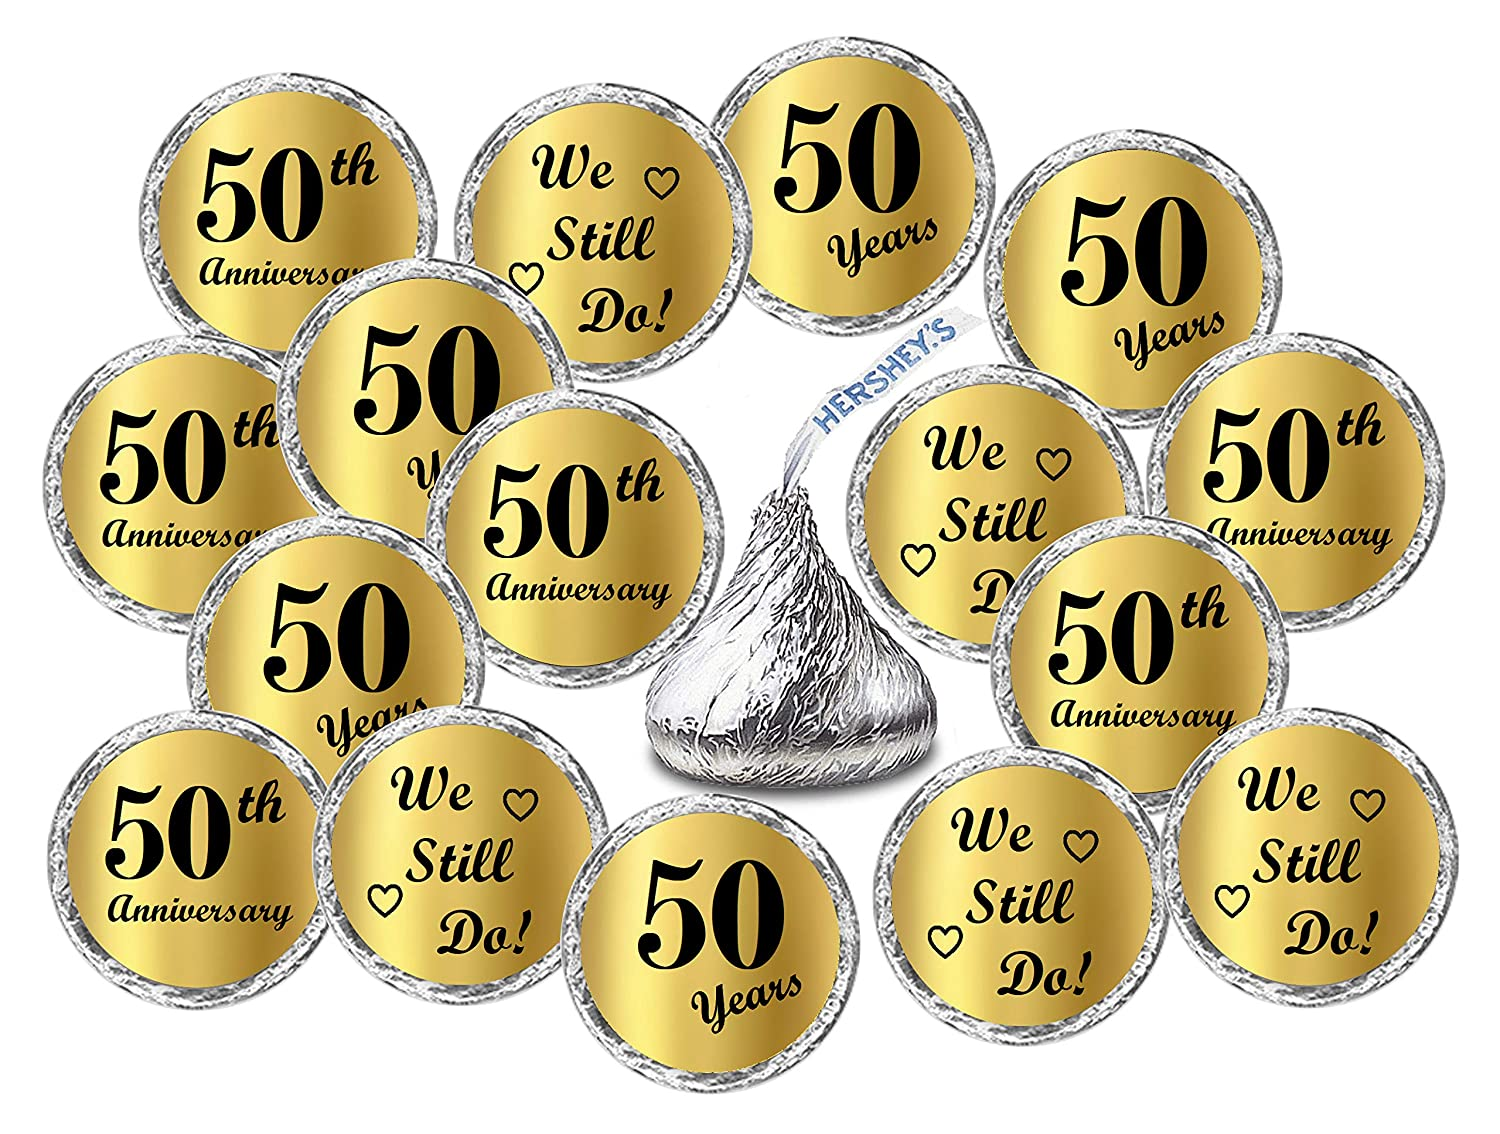 Hersheys Kisses Party Favors Decor Hershey/'s Kisses Party Favors Decor RokAPary Chocolate Drops Labels Stickers for 50th Wedding Anniversary Gold Foil 50th Anniversary Kisses Stickers, Set of 216